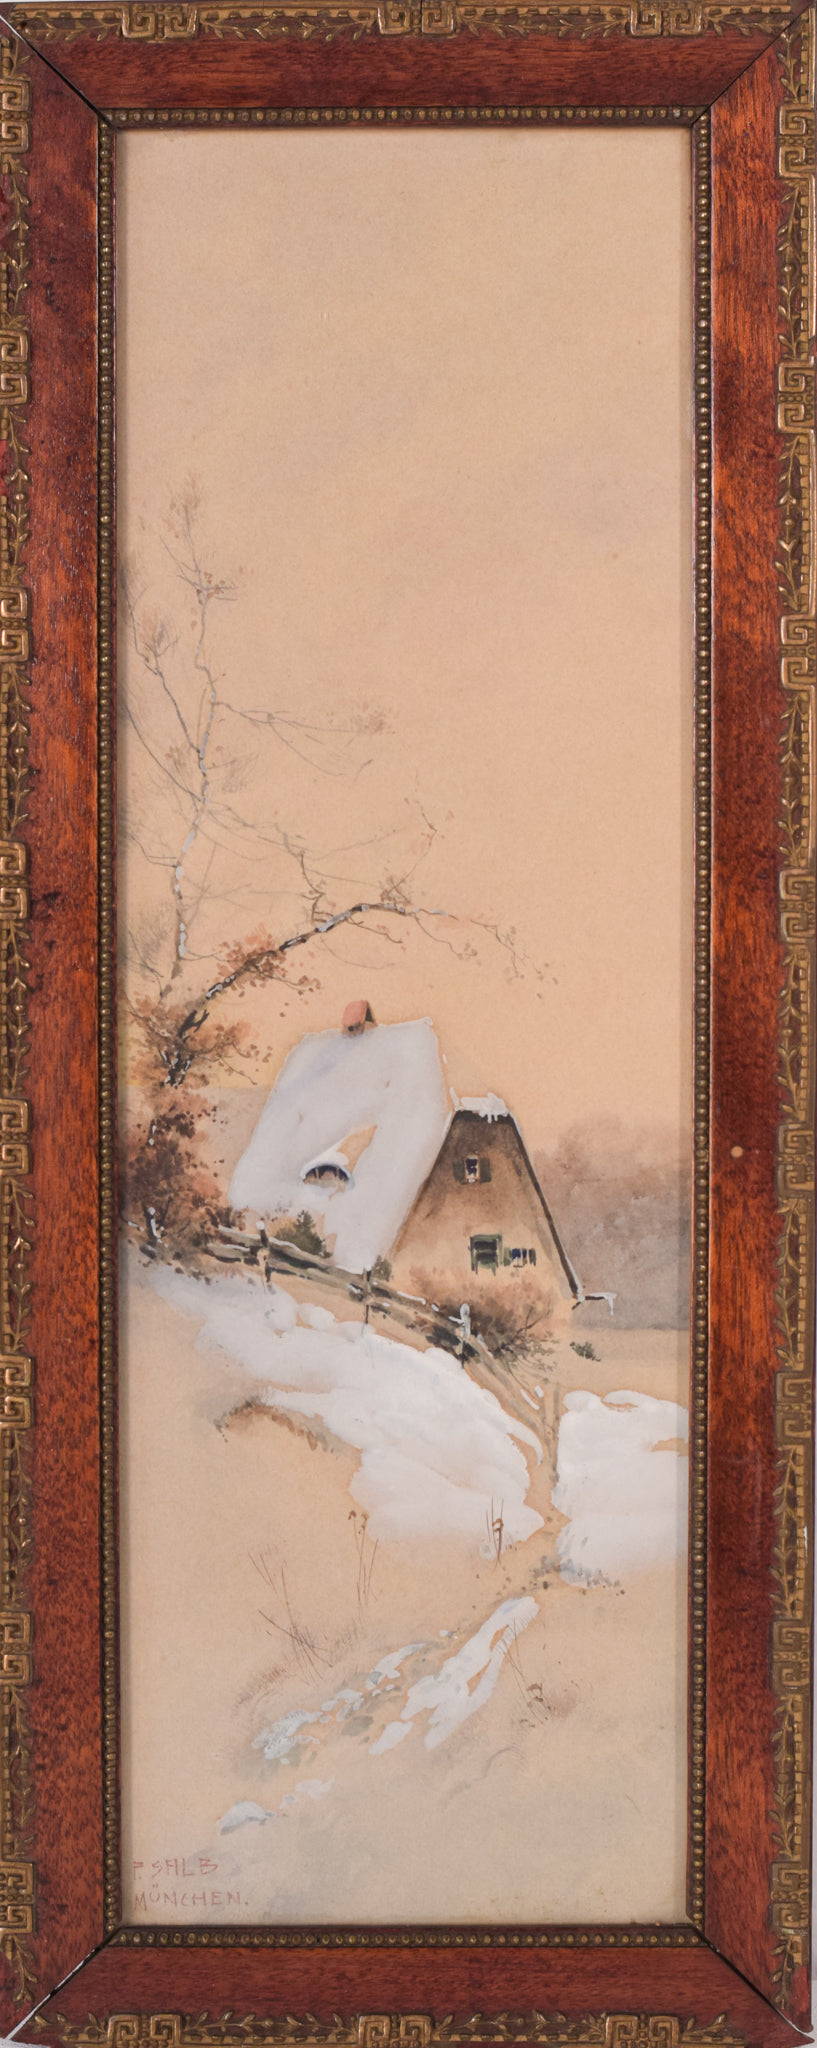 Snowscape Watercolour of a House mounted in a exquisite secessionist art Nouveau frame